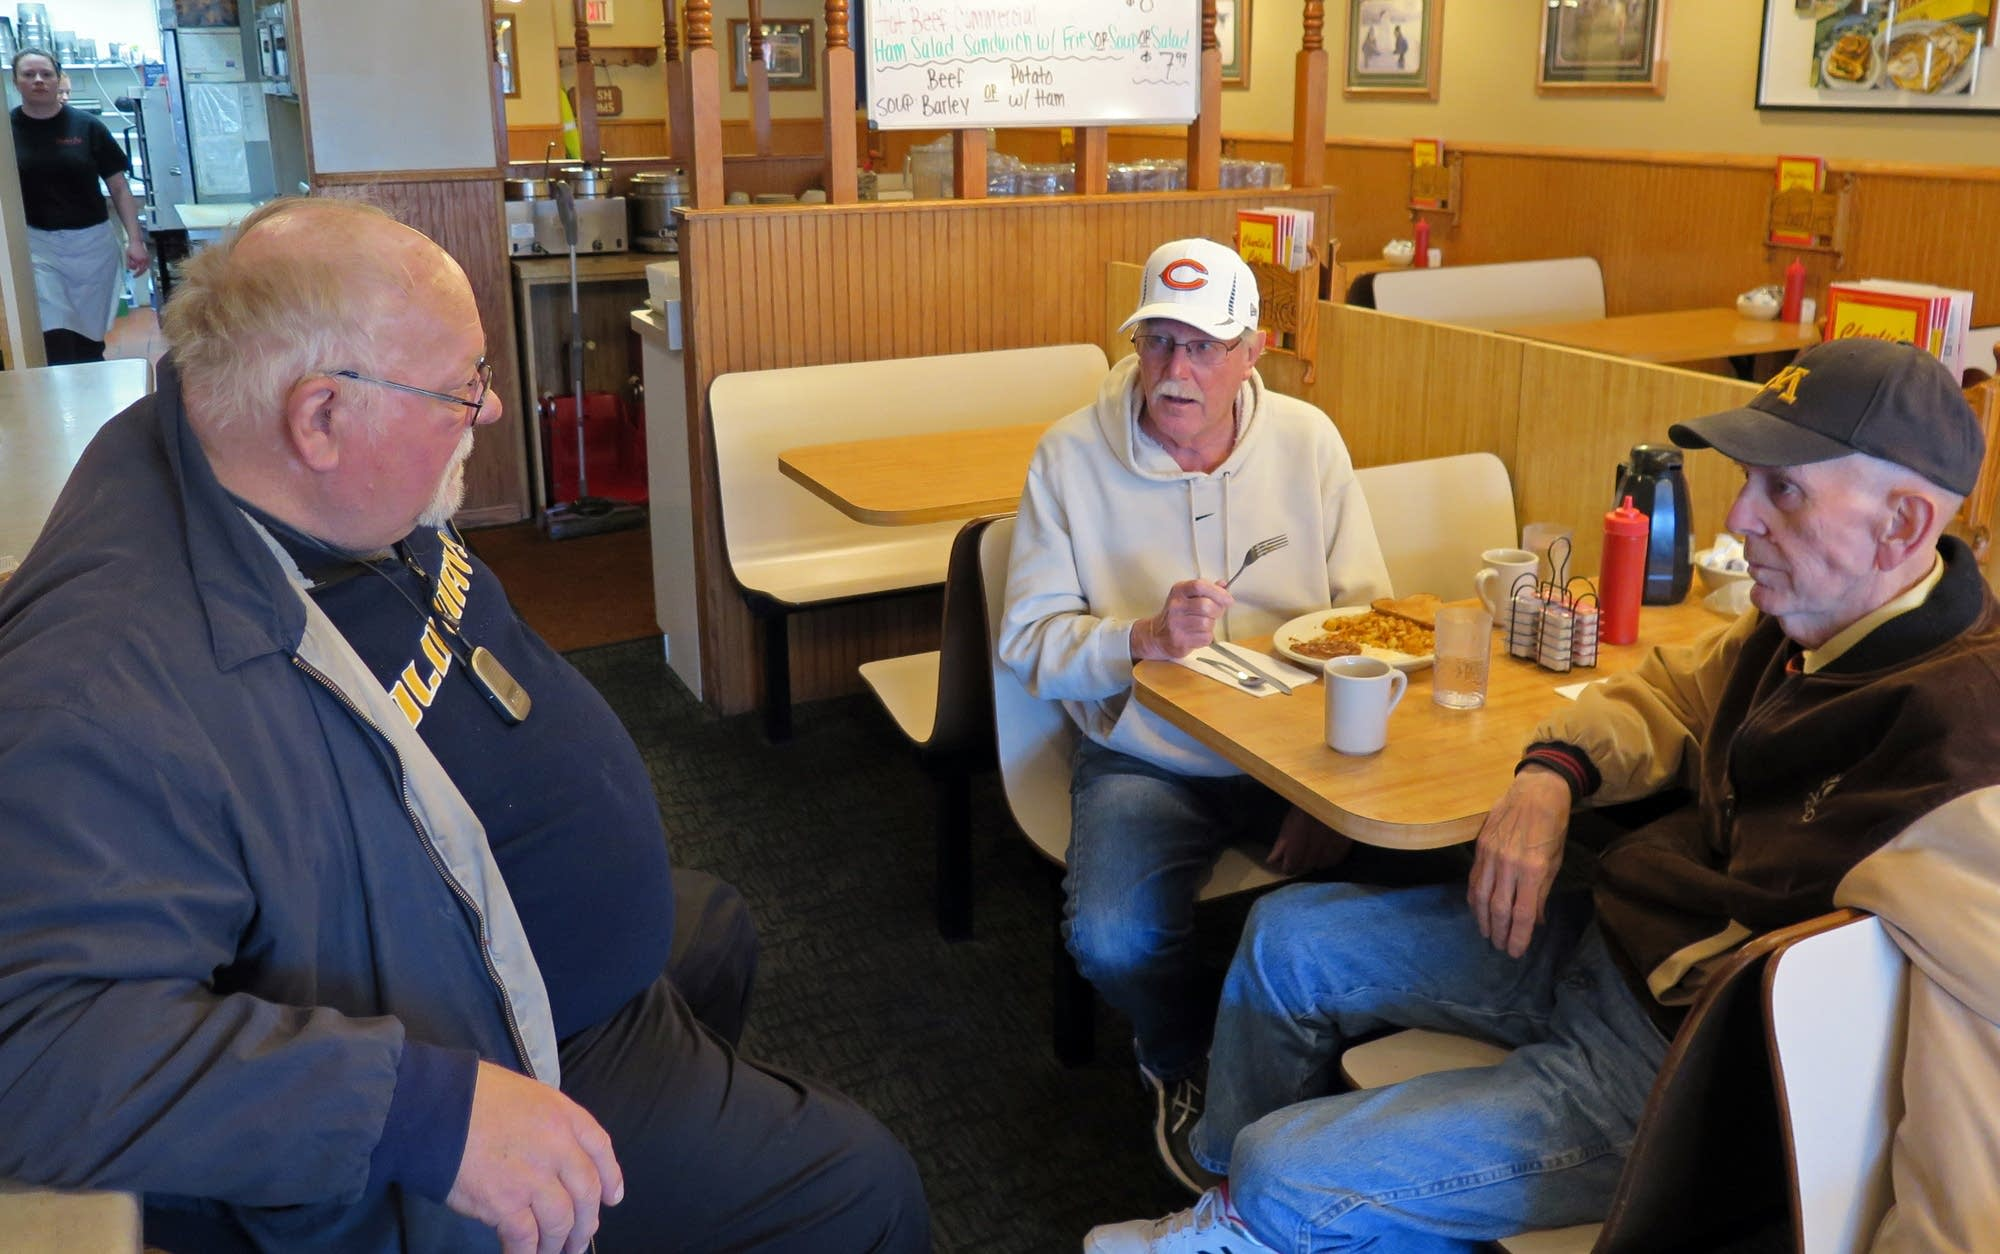 Former cafe owner Bud Heidgerken, center, chats with other patrons.